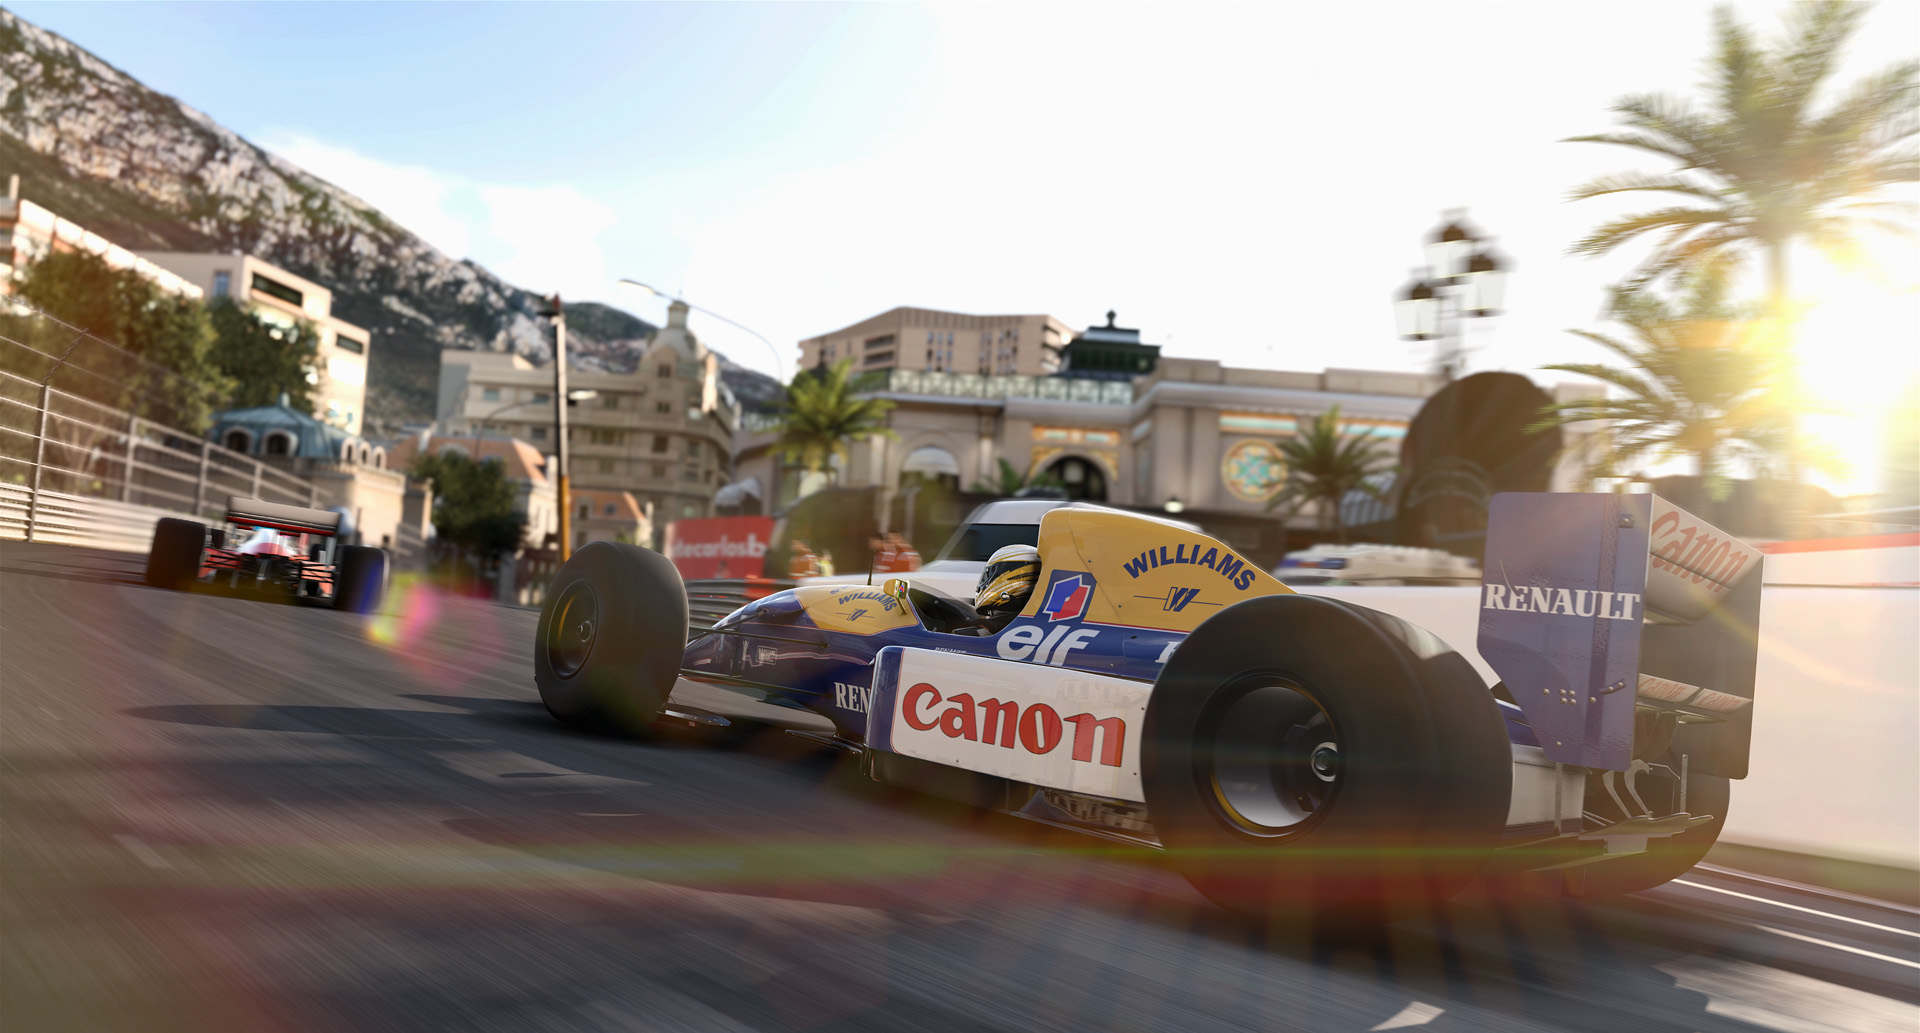 download f1 2017 special edition cracked by cpy include all dlc and latest update v1.6 mirrorace multiup